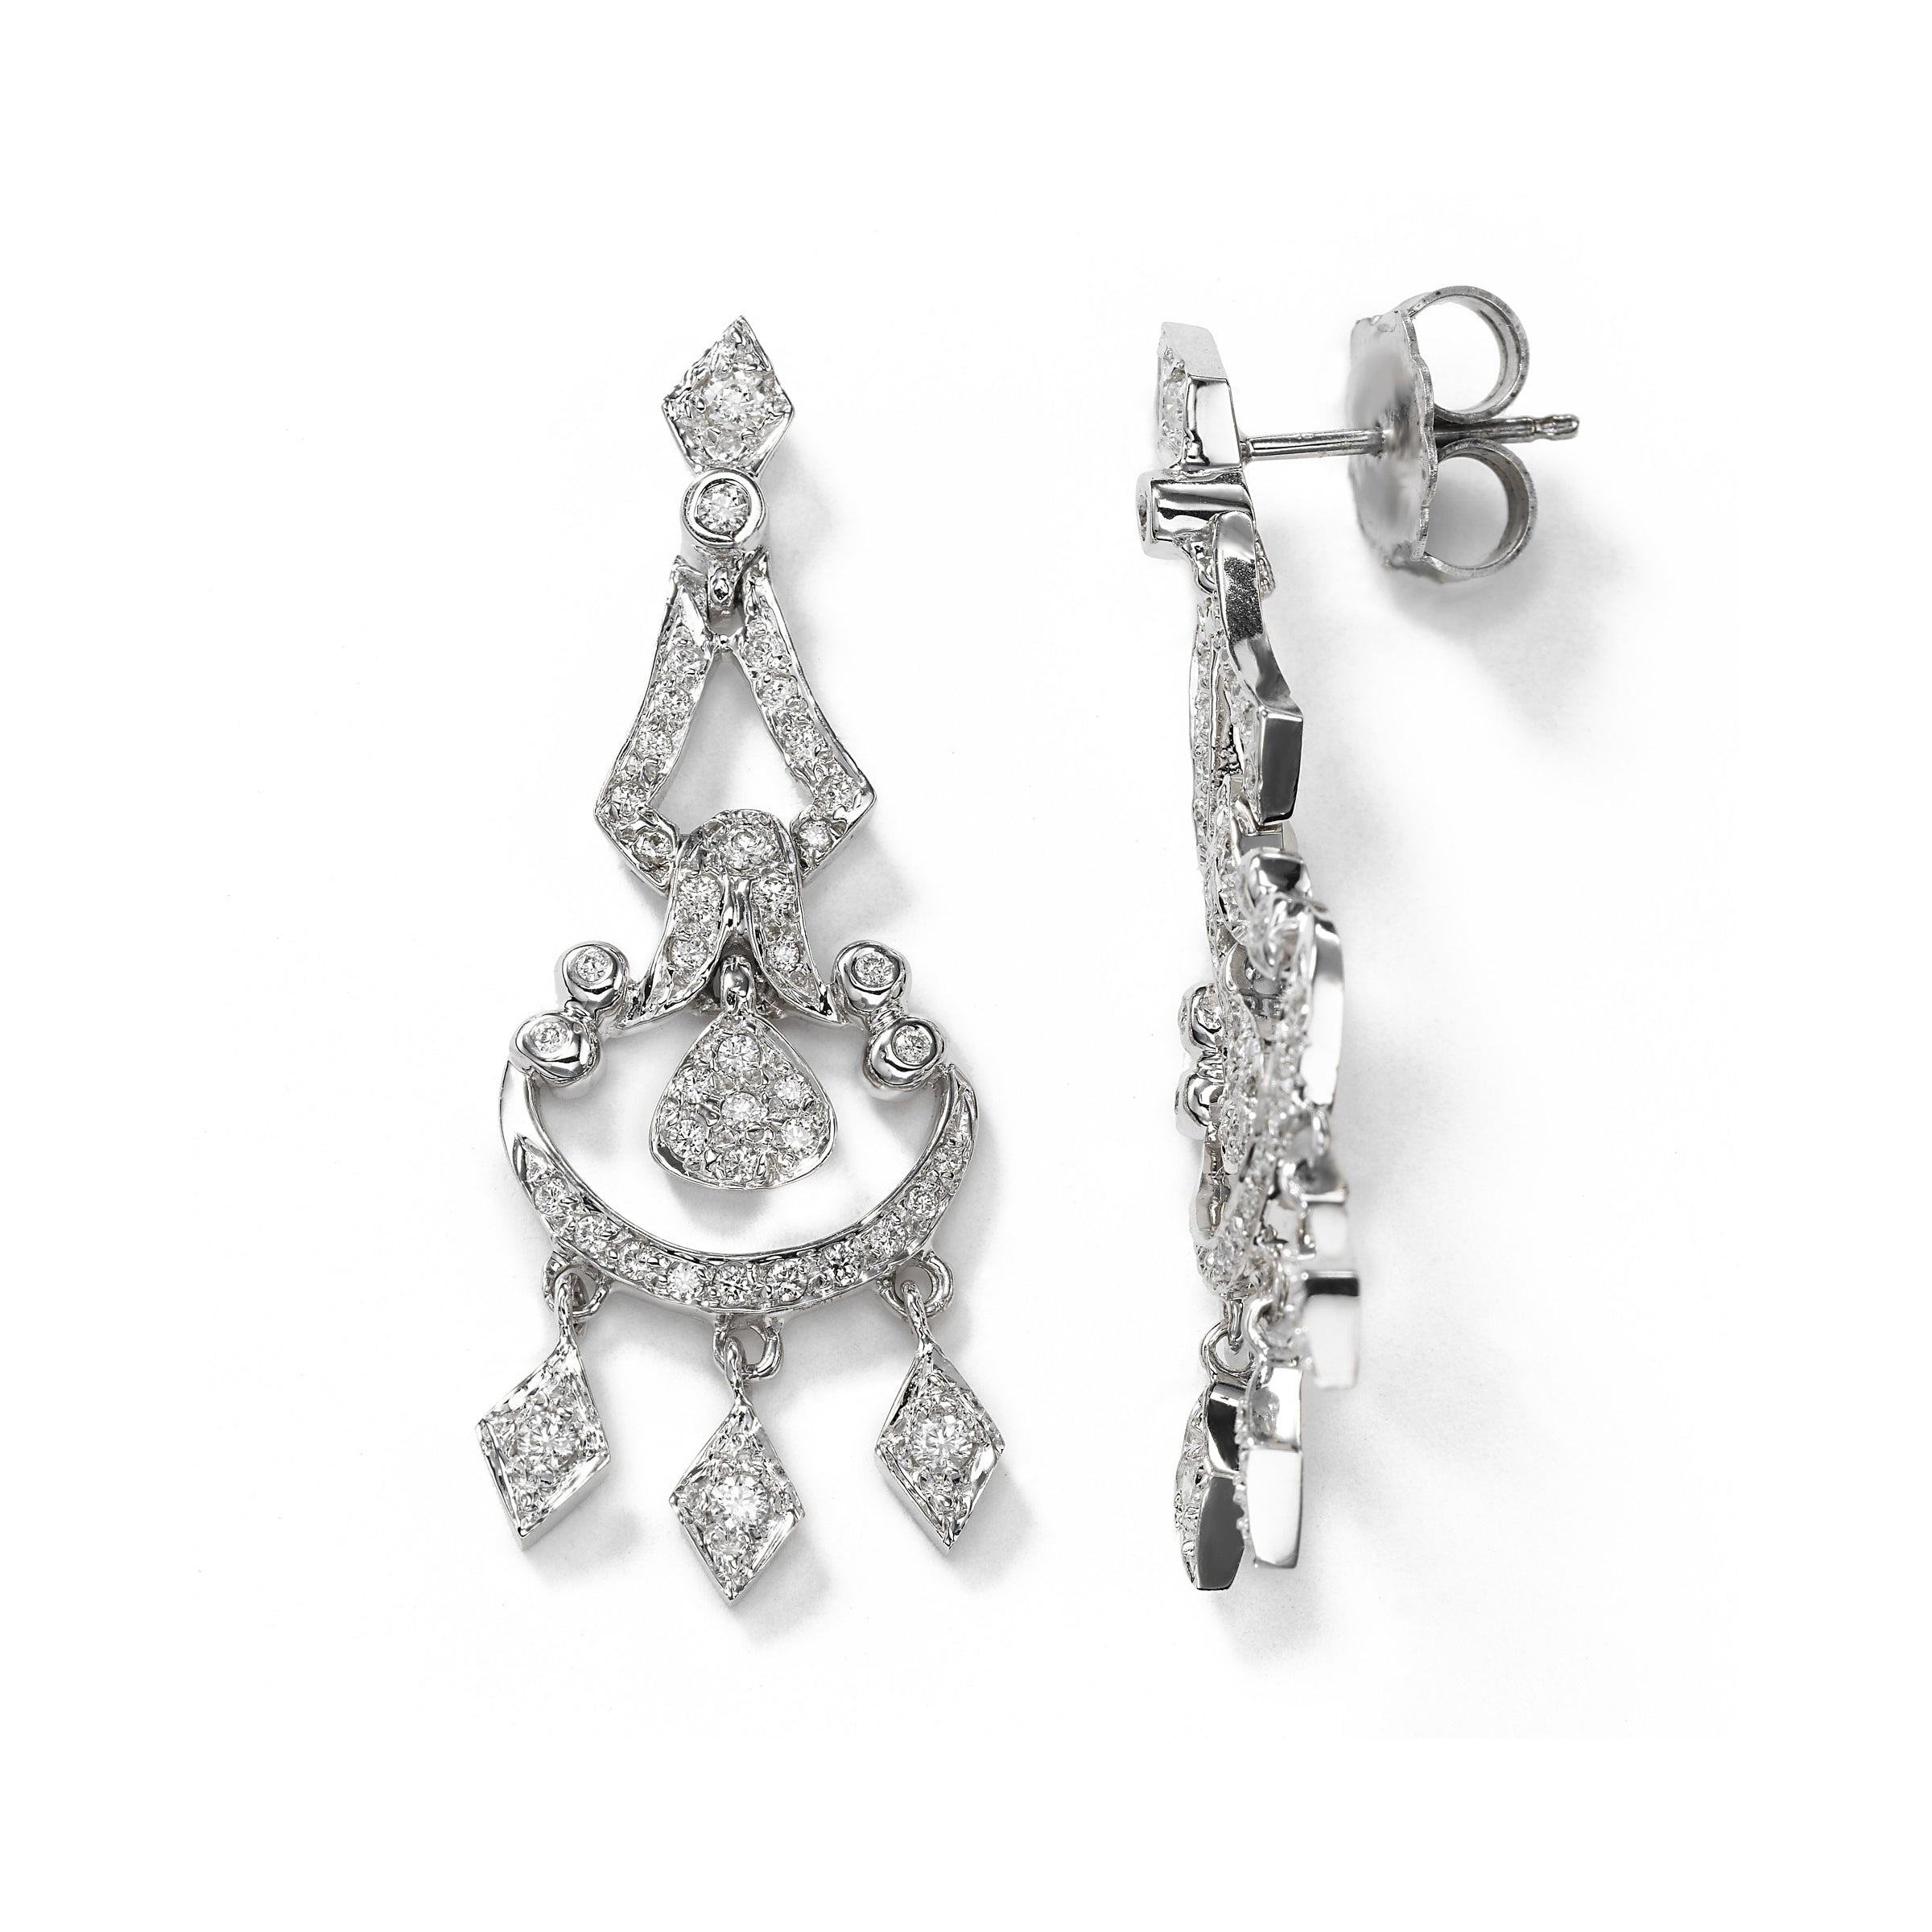 Pave Diamond Chandelier Earring, .90 Carat, 14K White Gold